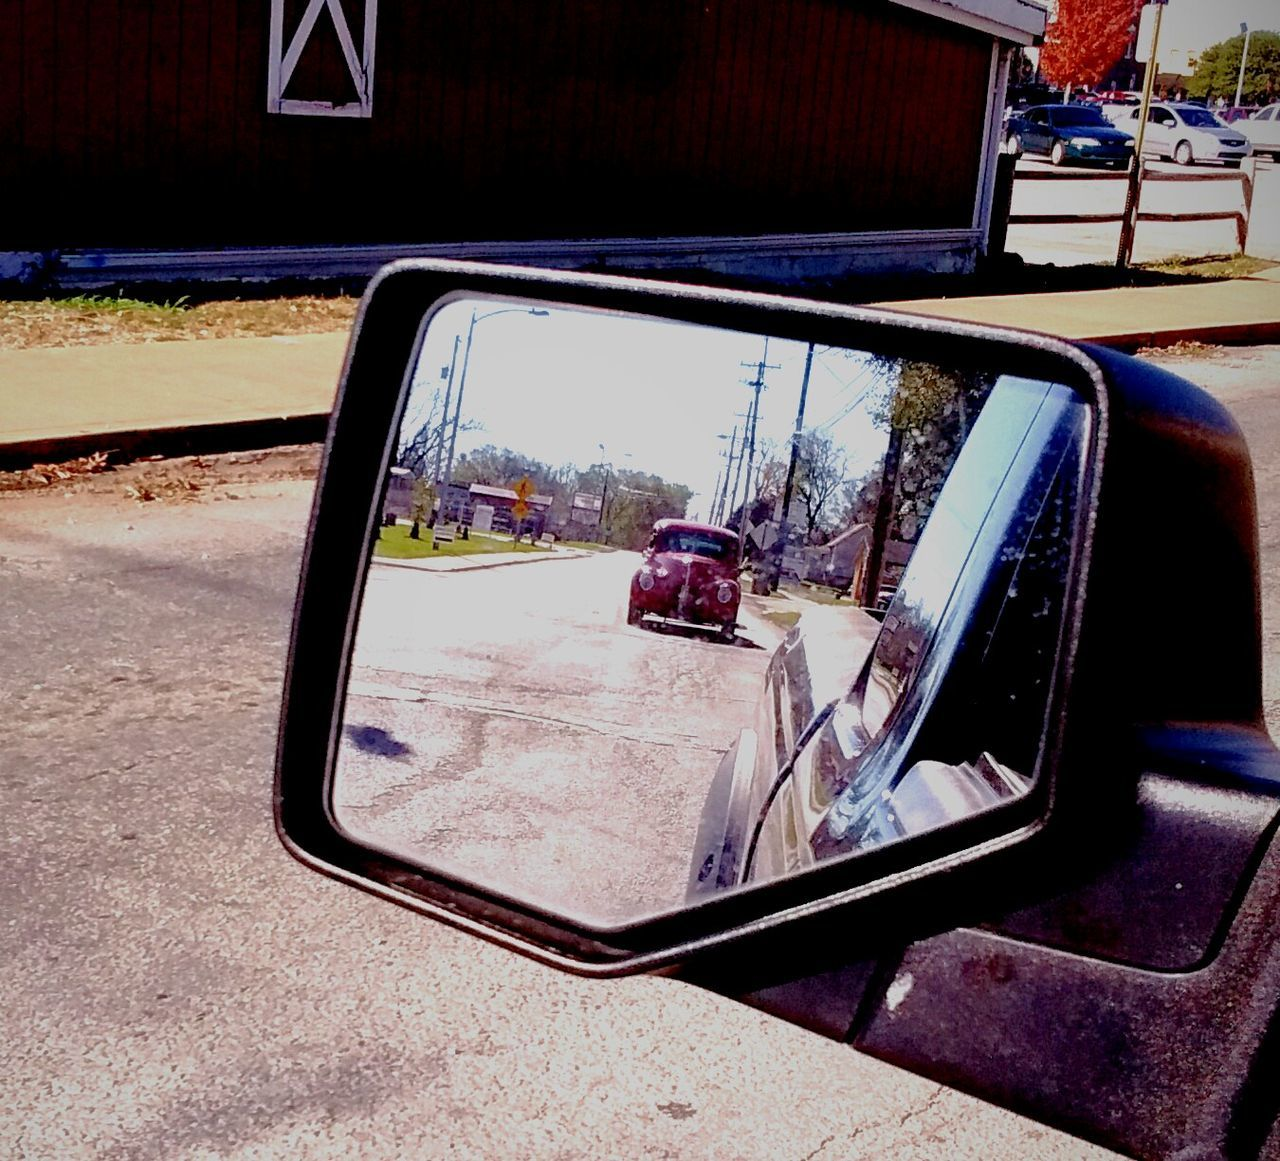 Car Transportation On The Move Travel Road Driving Outdoors No People Day Sky Vehicle Mirror The Drive Arkansas, USA Arkansas_ozarks Arkansas Mirror Picture Mirror